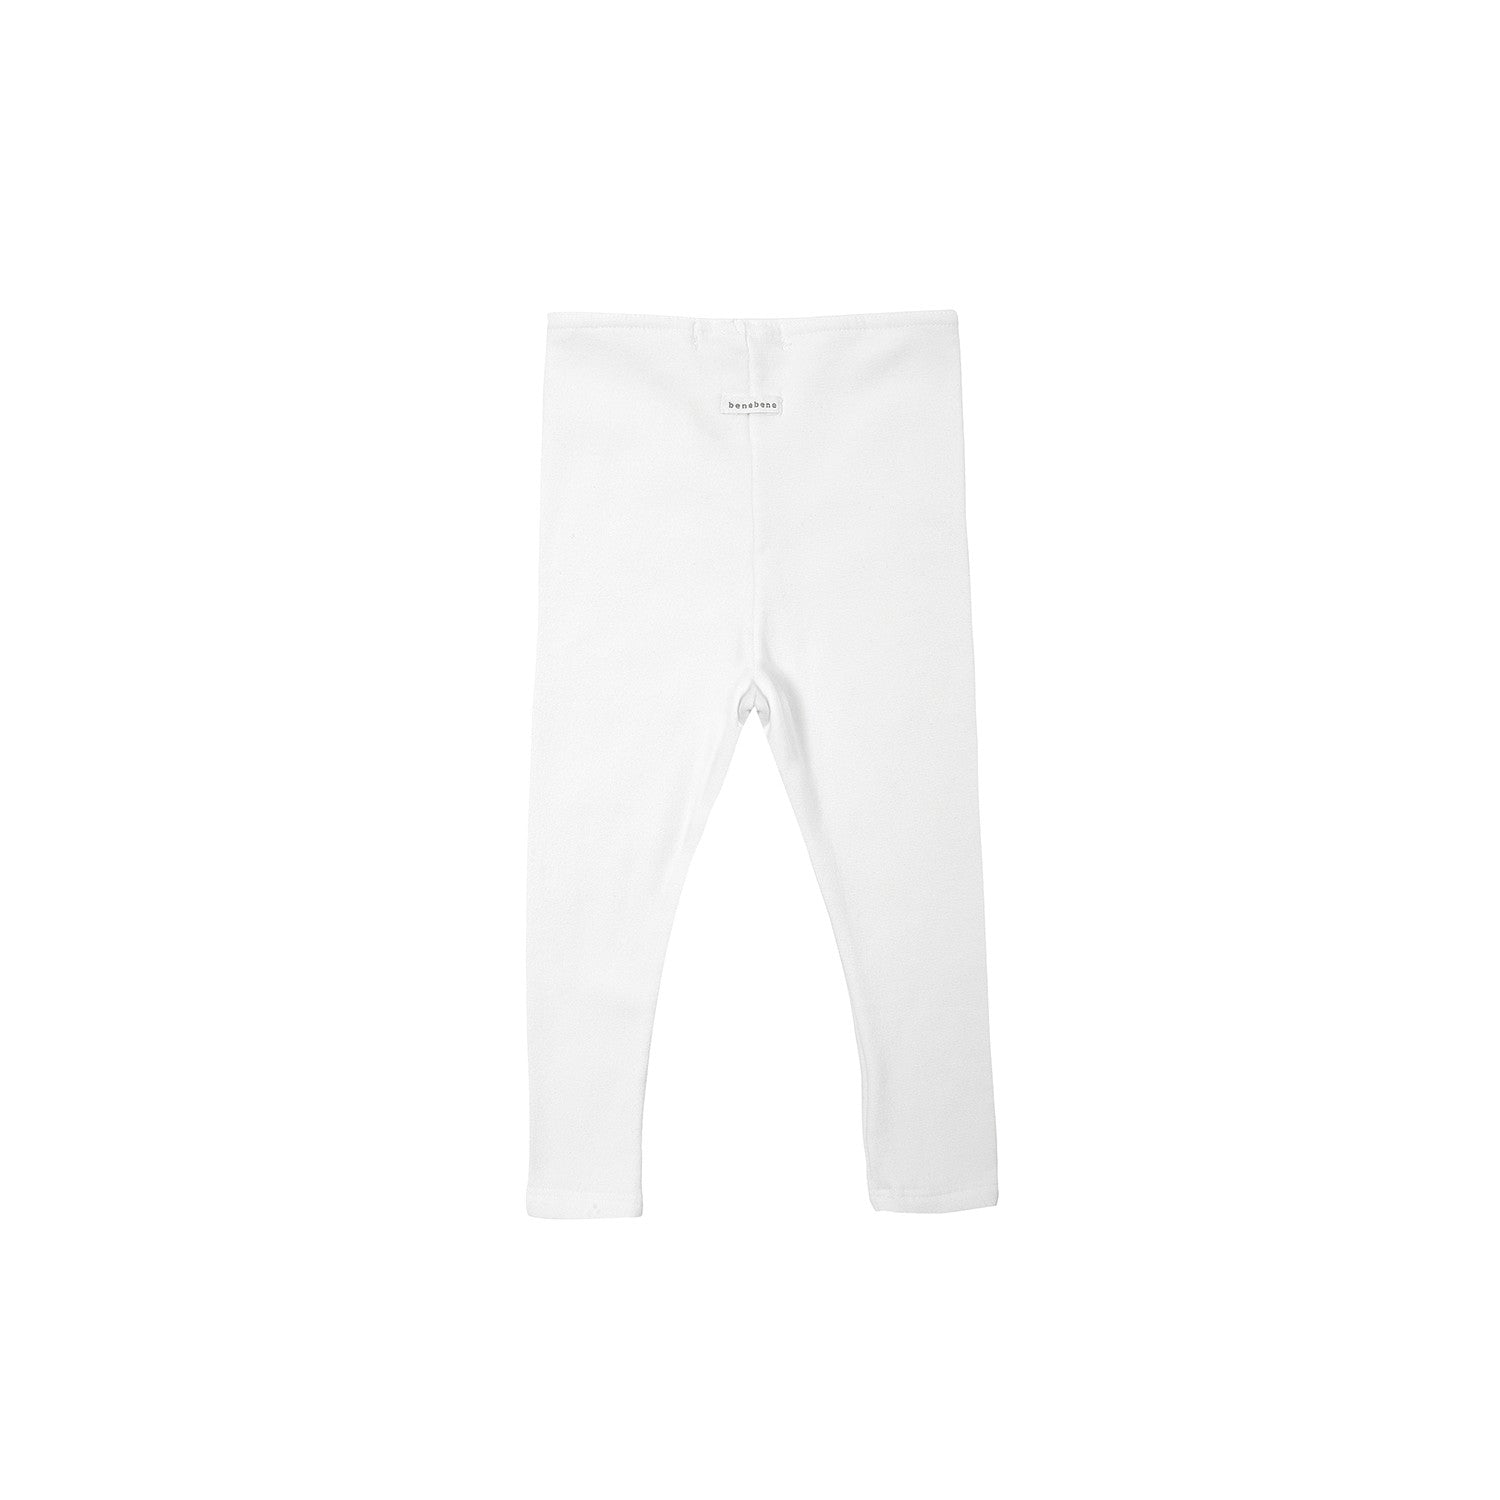 Bene Bene Ivory Warm Leggings